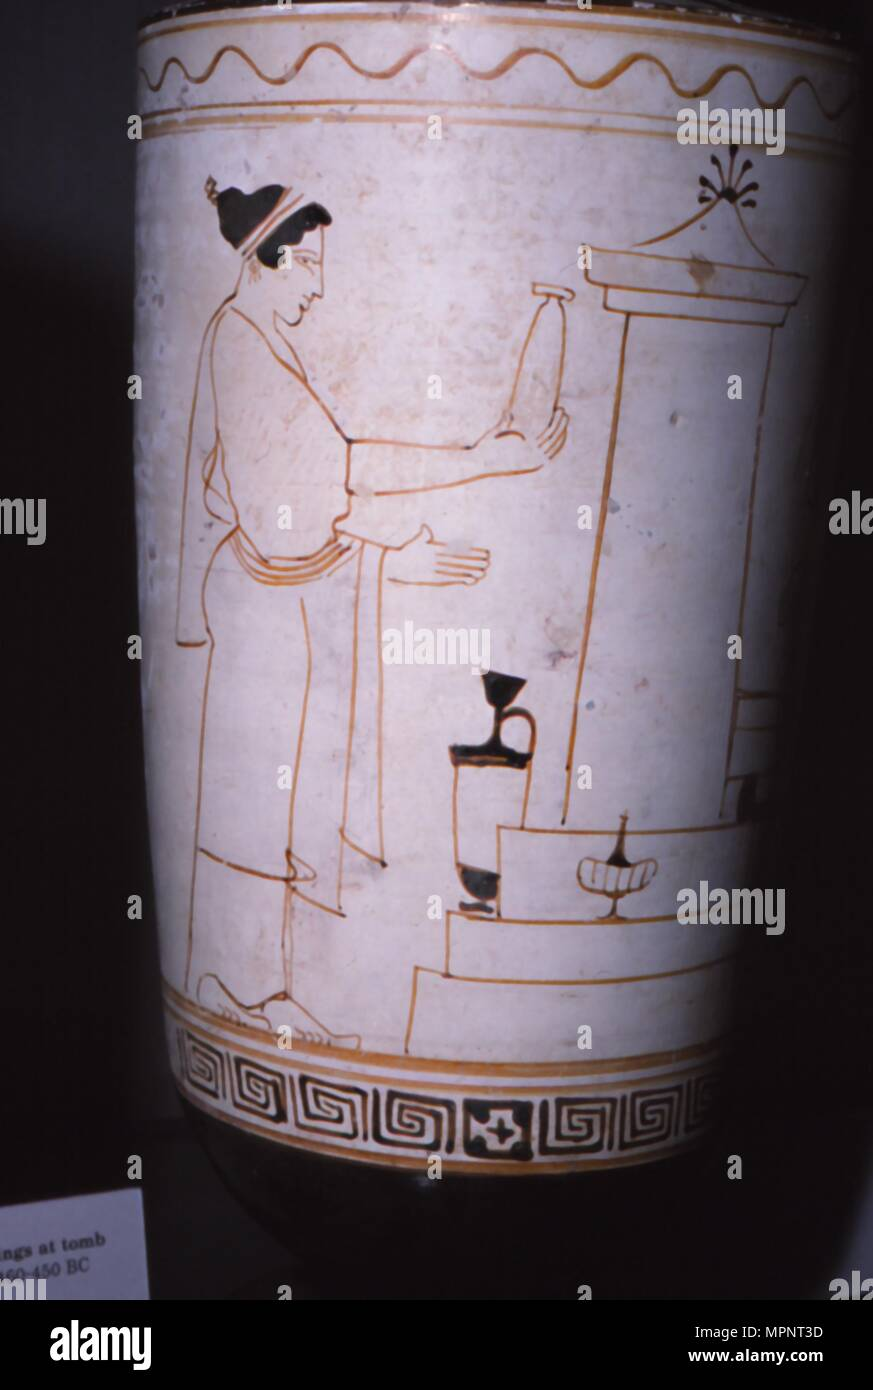 Pittura Vascolare Caratteristiche Greek Vase Painting Immagini Greek Vase Painting Fotos Stock Alamy